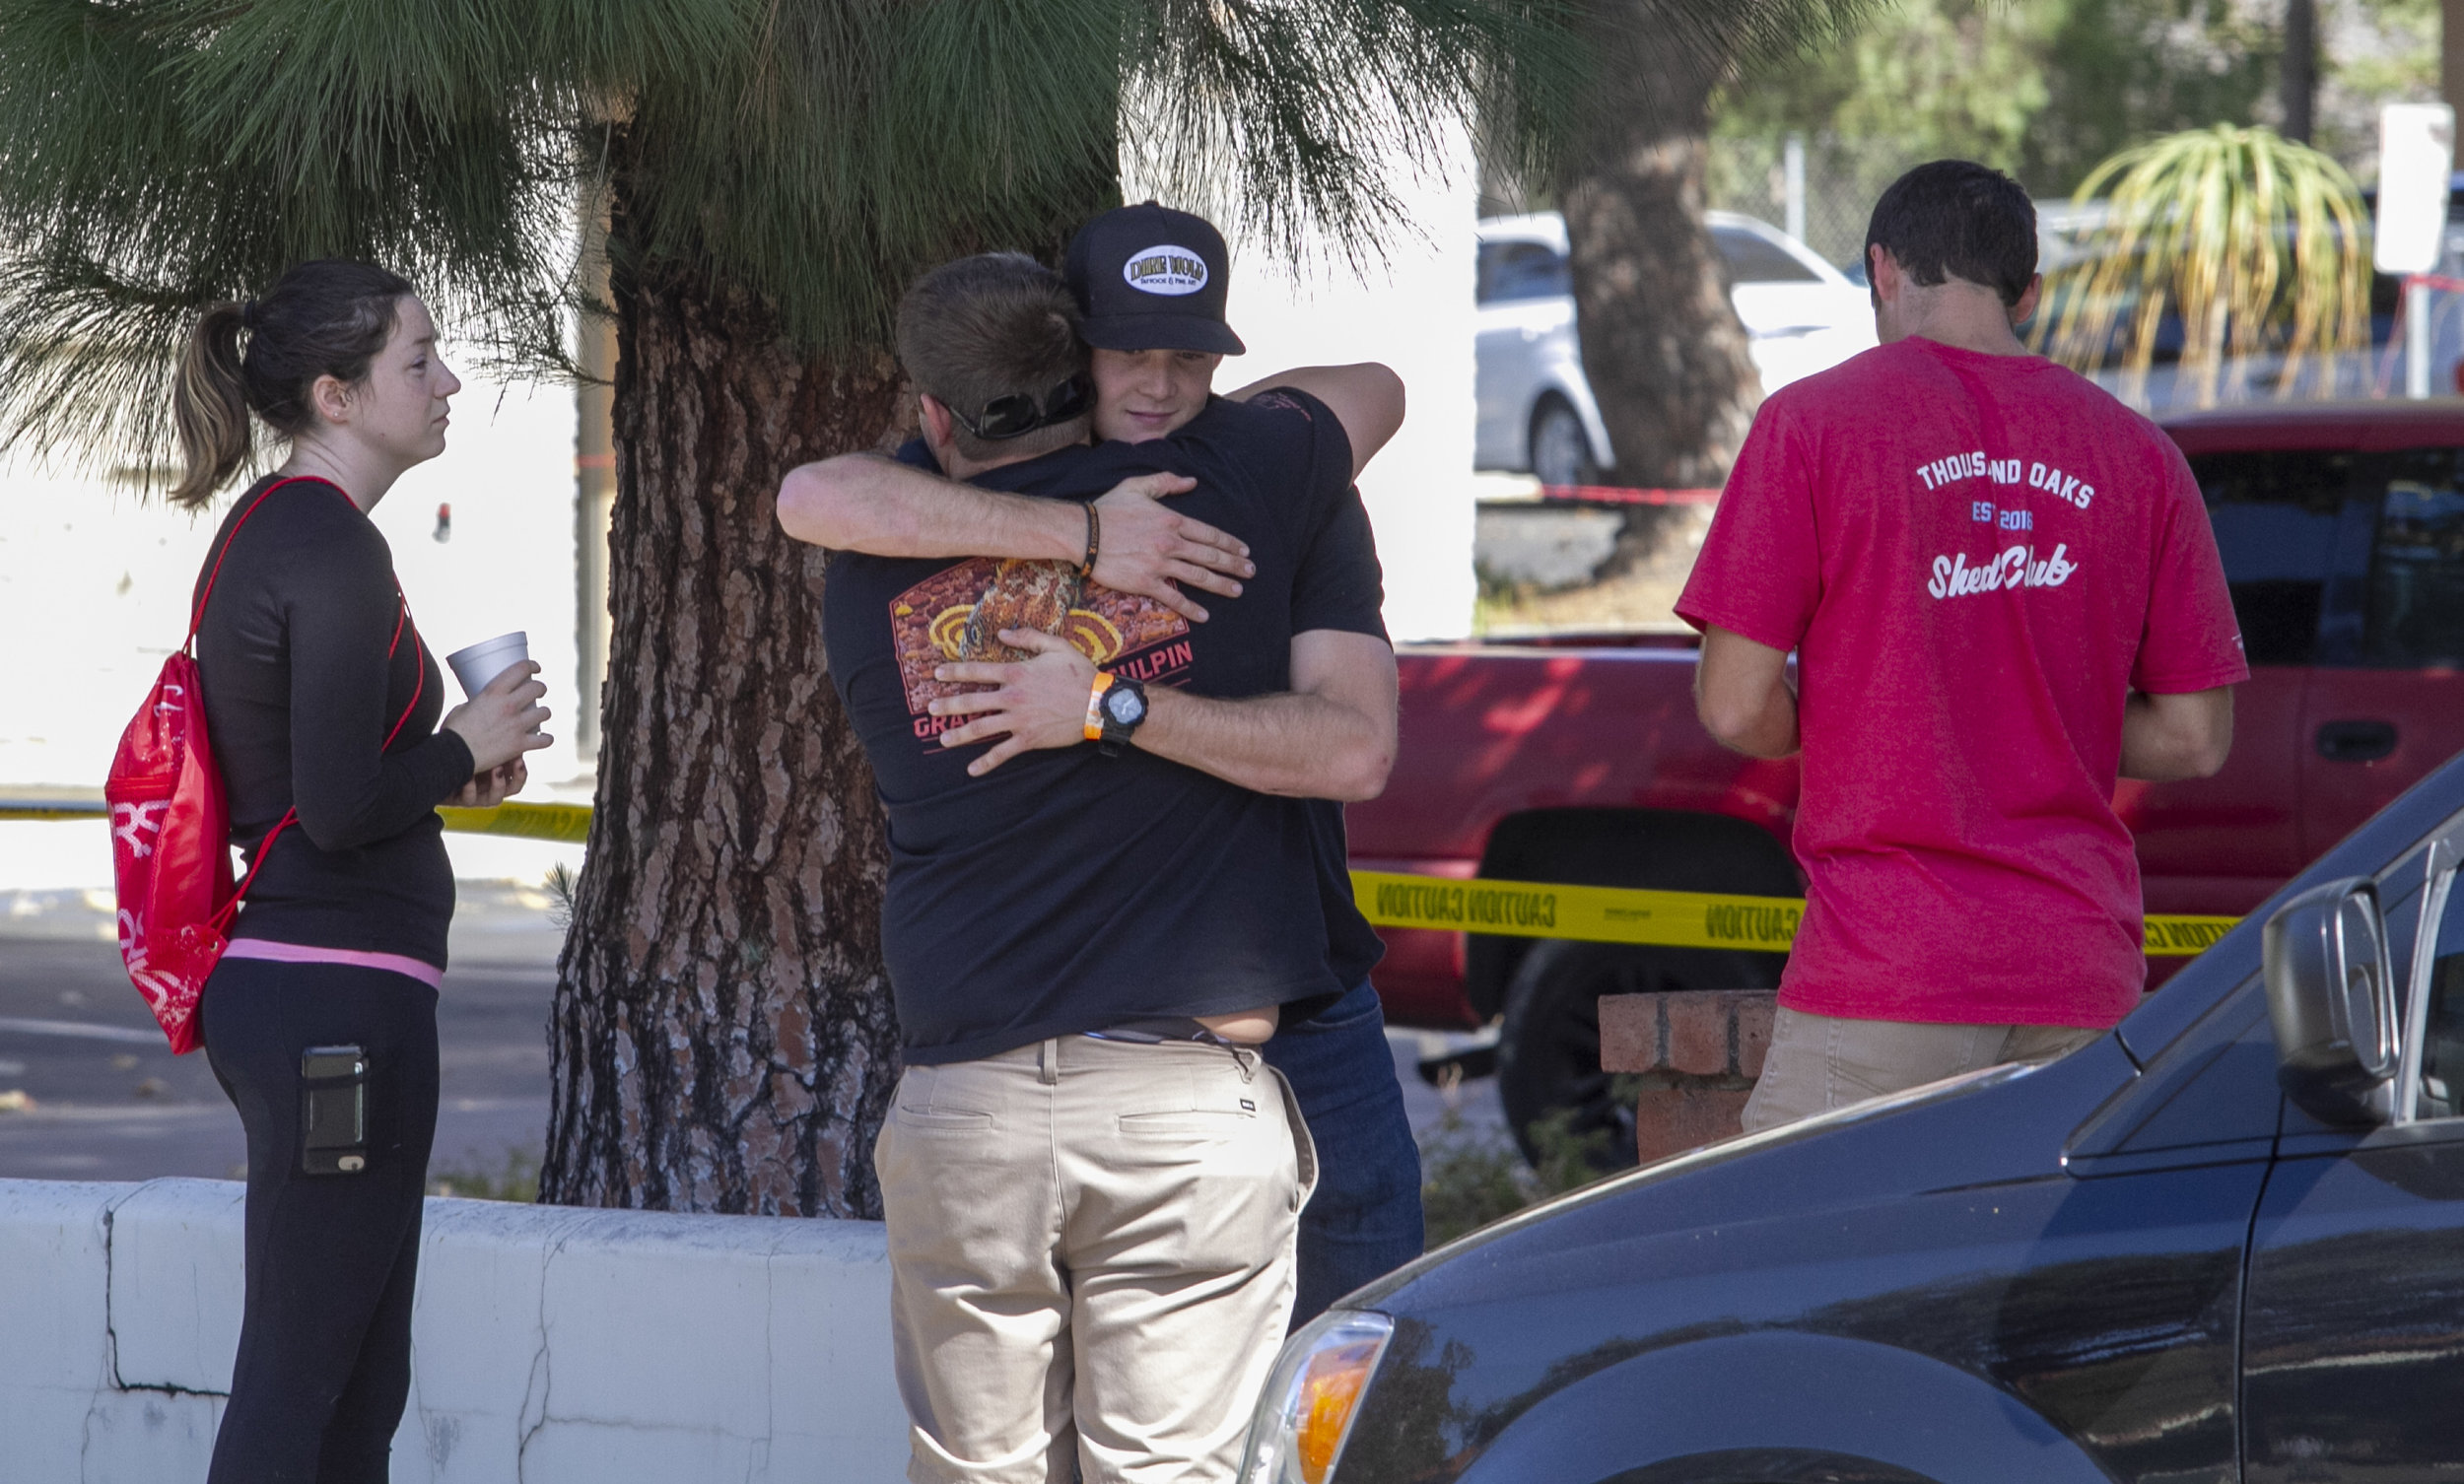 People comfort each other while waiting to speak to authorities. Ian David Long, 28, killed at least 13 and injured more than a dozen at Borderline Bar & Grill in Thousand Oaks, CA on Wednesday, Nov. 7 2018. (Andrew Navarro/ Corsair Staff)